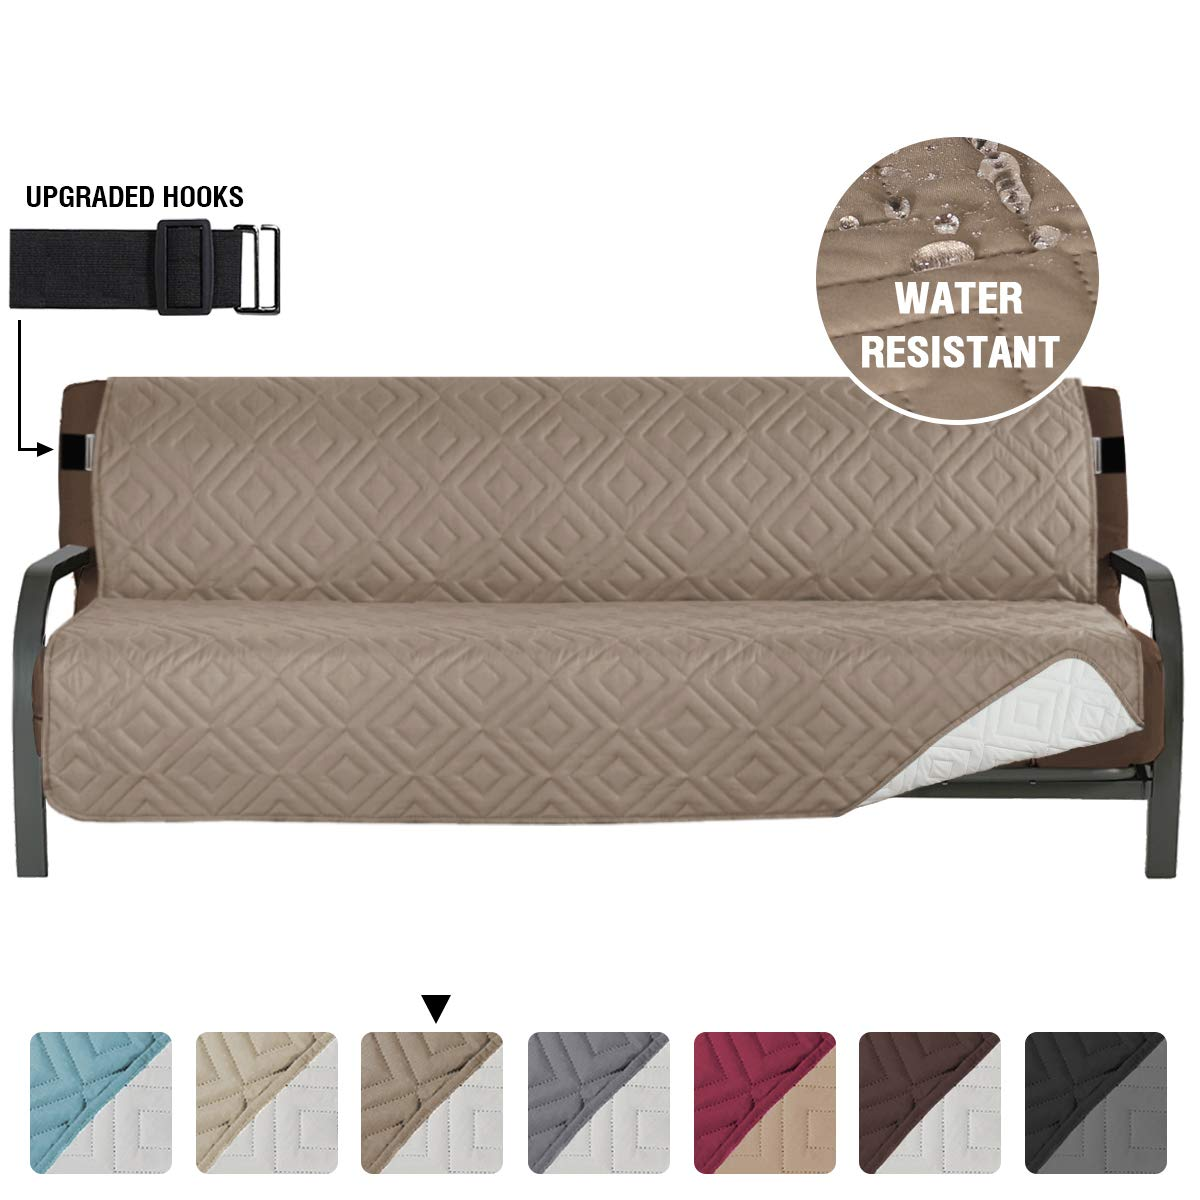 """Armless Futon Cover Futon Slipcover Full Queen Size Futon Couch Cover Futon Sofa Cover Futon Bed Cover Furniture Protector Water Repellent Soft Thick Quilted Reversible, Seat Width: 70"""", Taupe/Beige"""